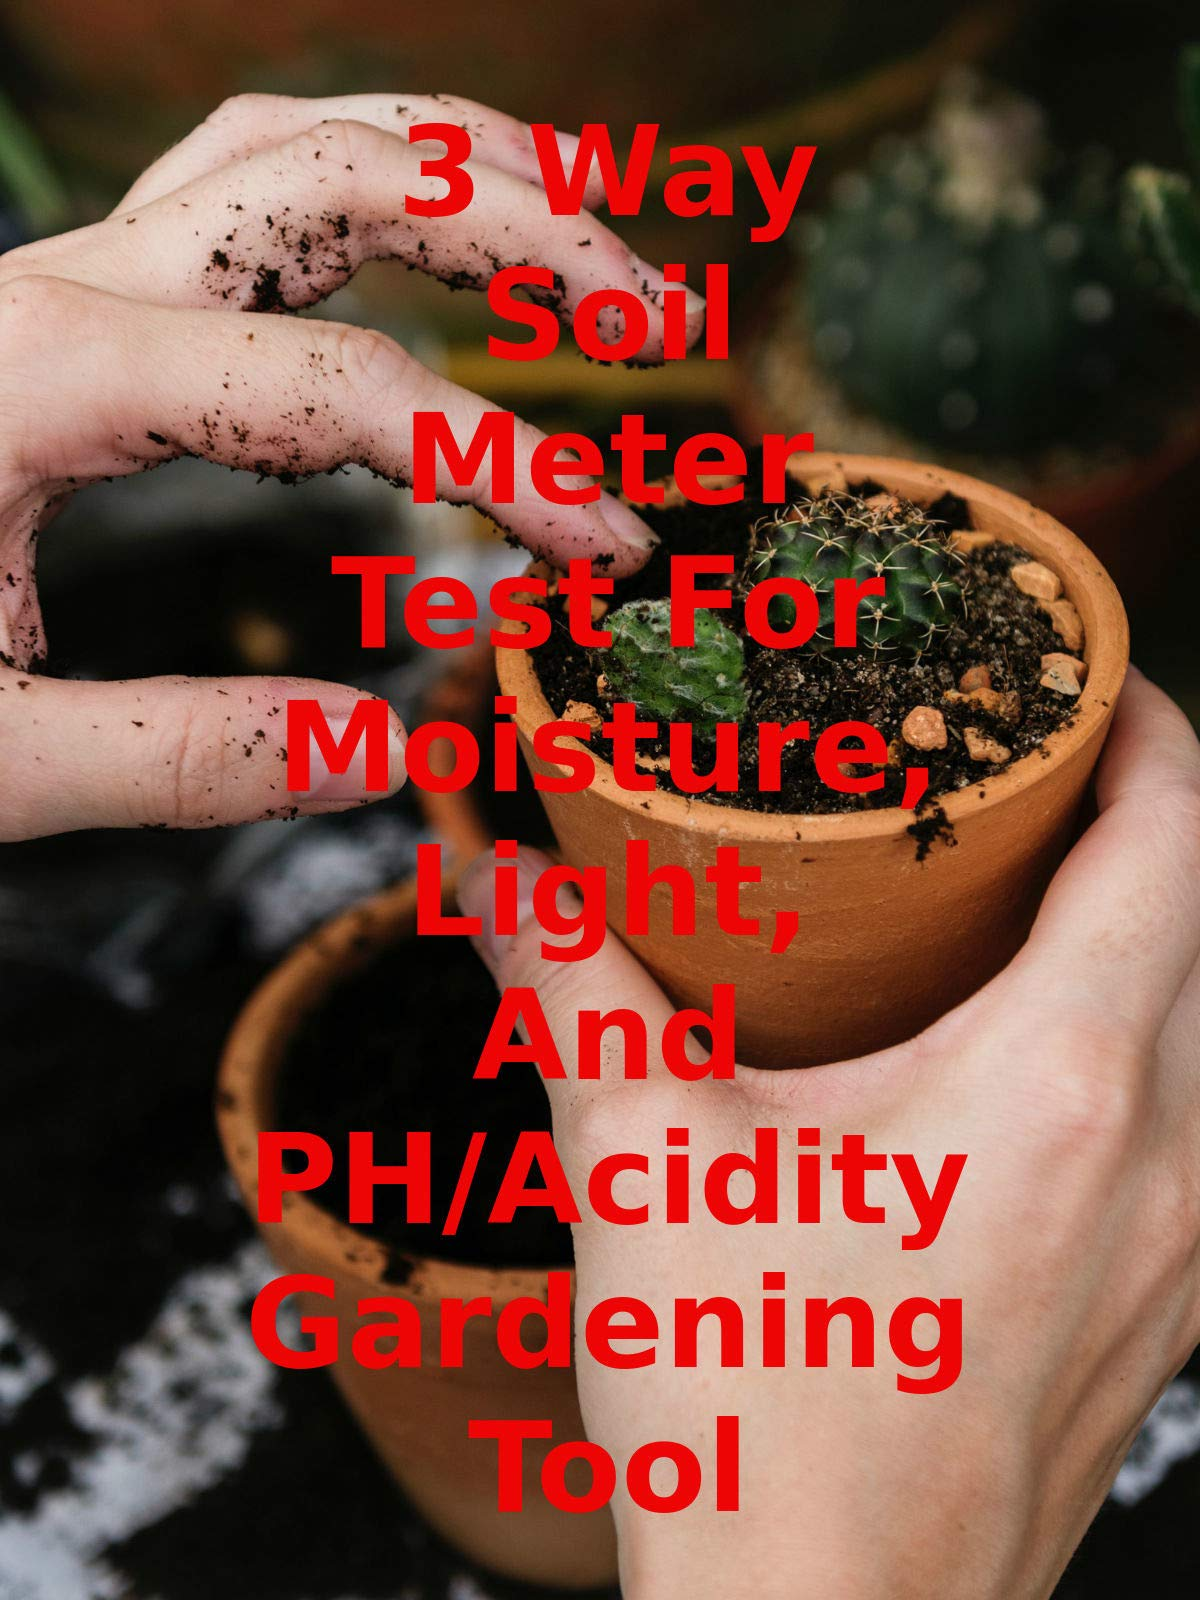 Review: 3 Way Soil Meter Test For Moisture, Light, And PH/Acidity Gardening Tool on Amazon Prime Video UK